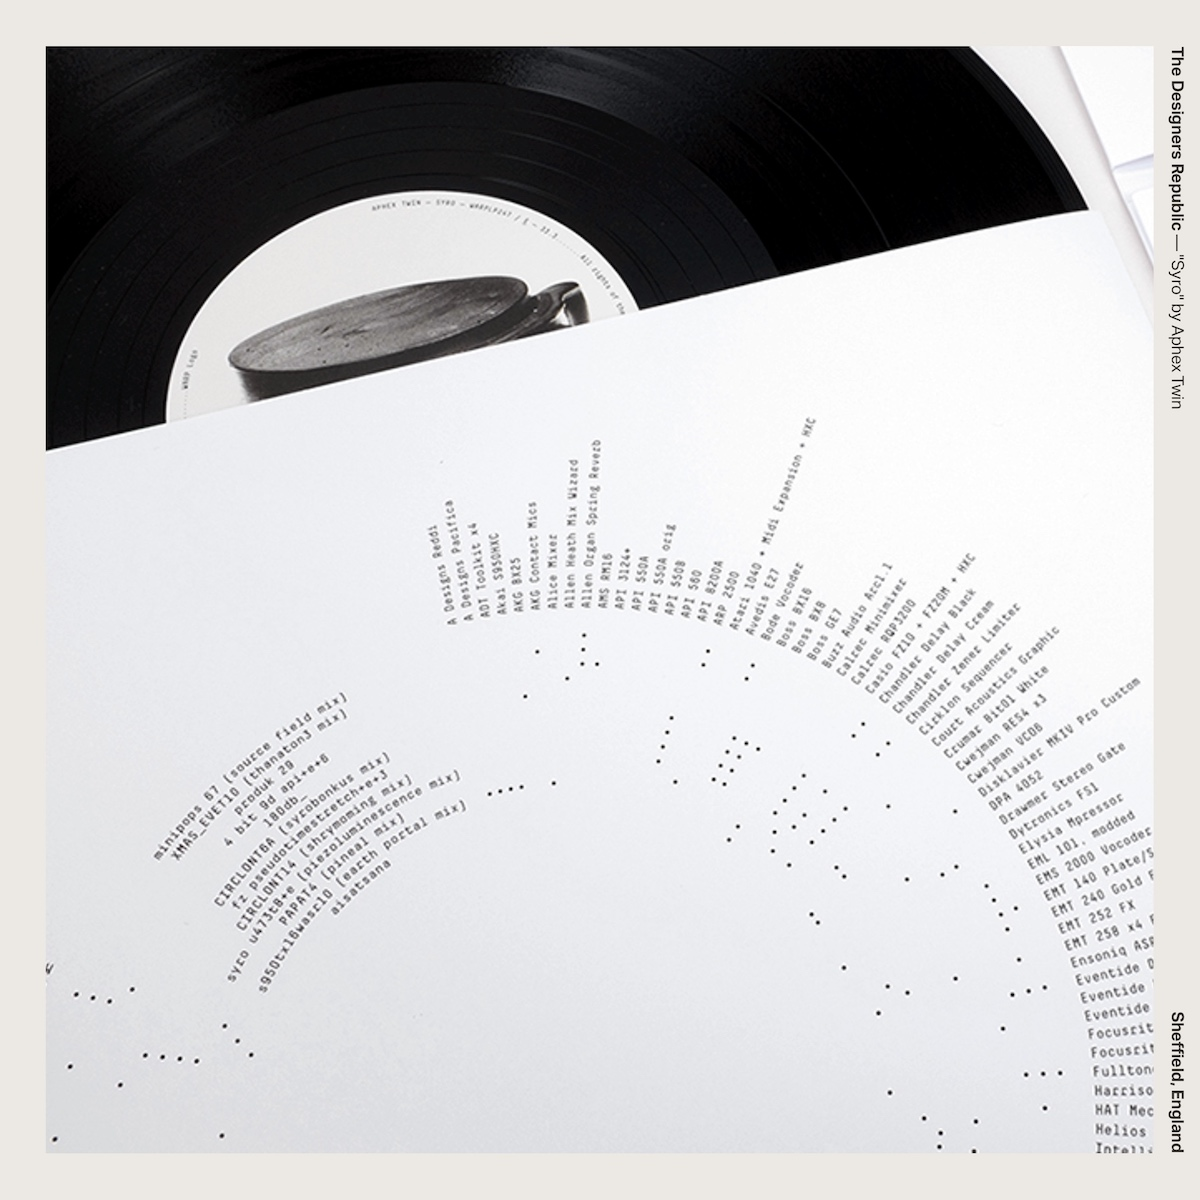 """The Designers Republic — """"Syro"""" by Aphex Twin"""